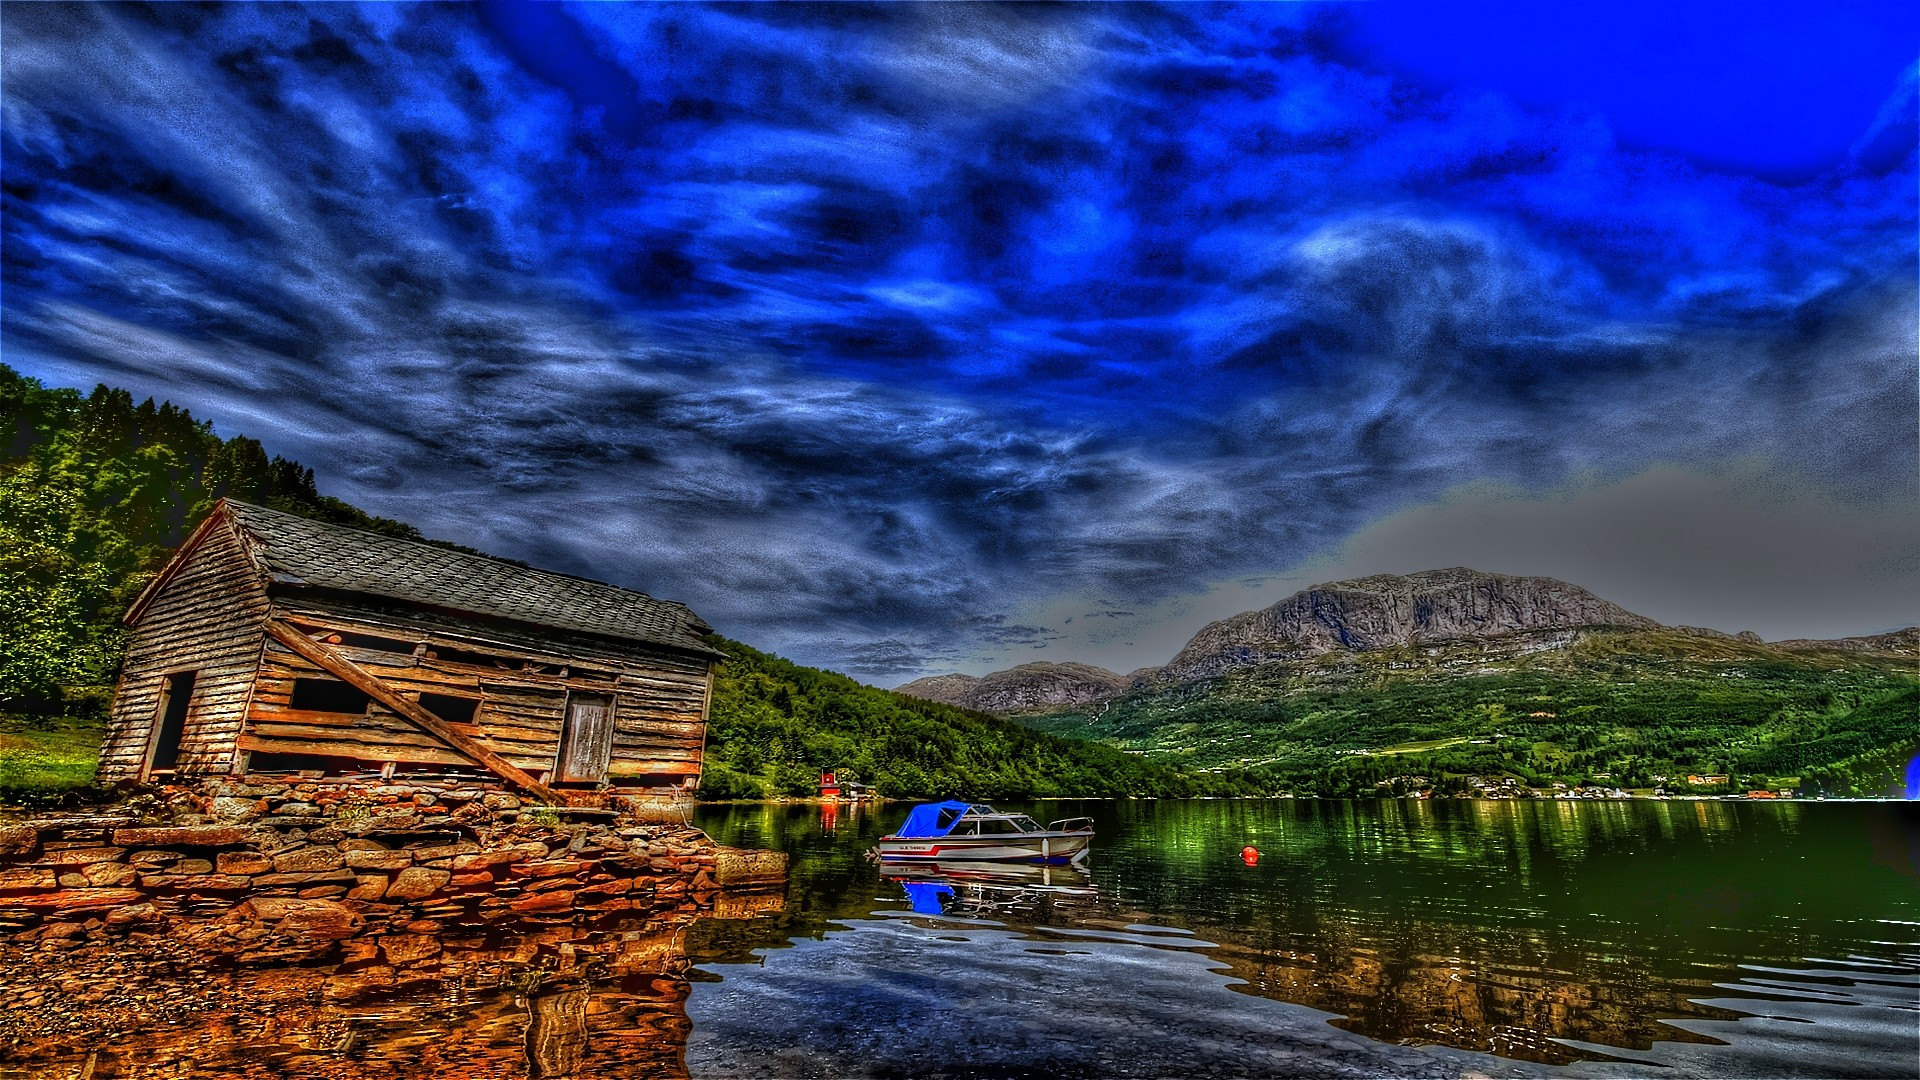 Landscapes HDR Wallpaper 1920x1080 Landscapes HDR Photography 1920x1080